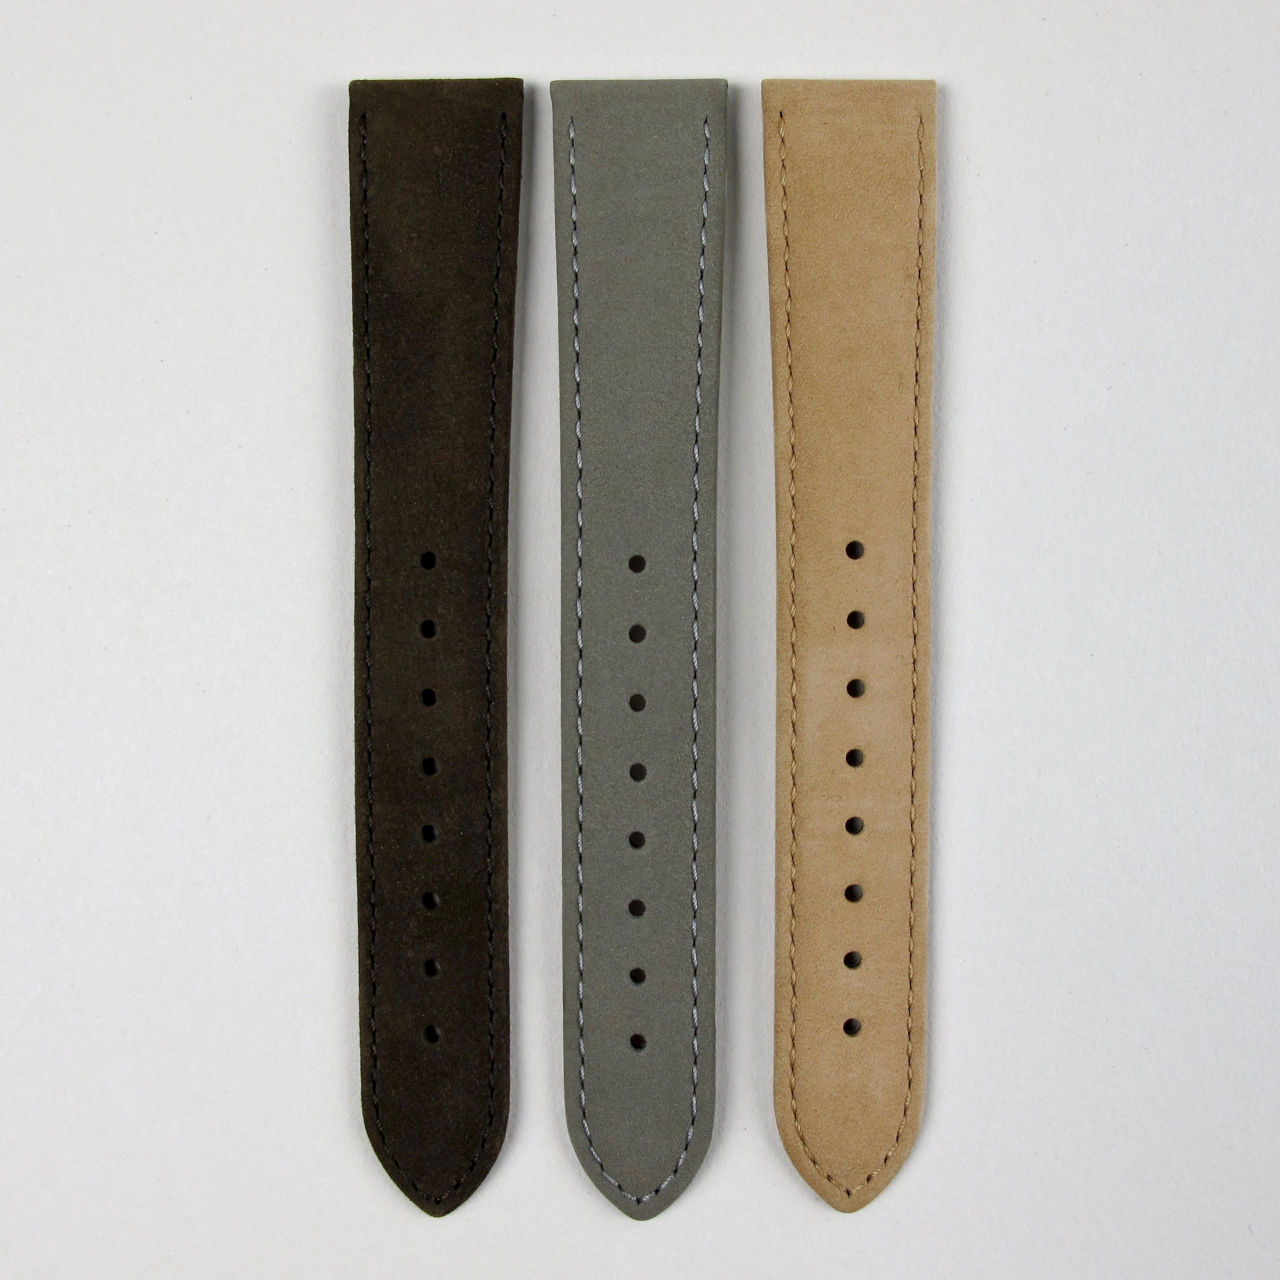 Hirsch Osiris suede finished leather straps